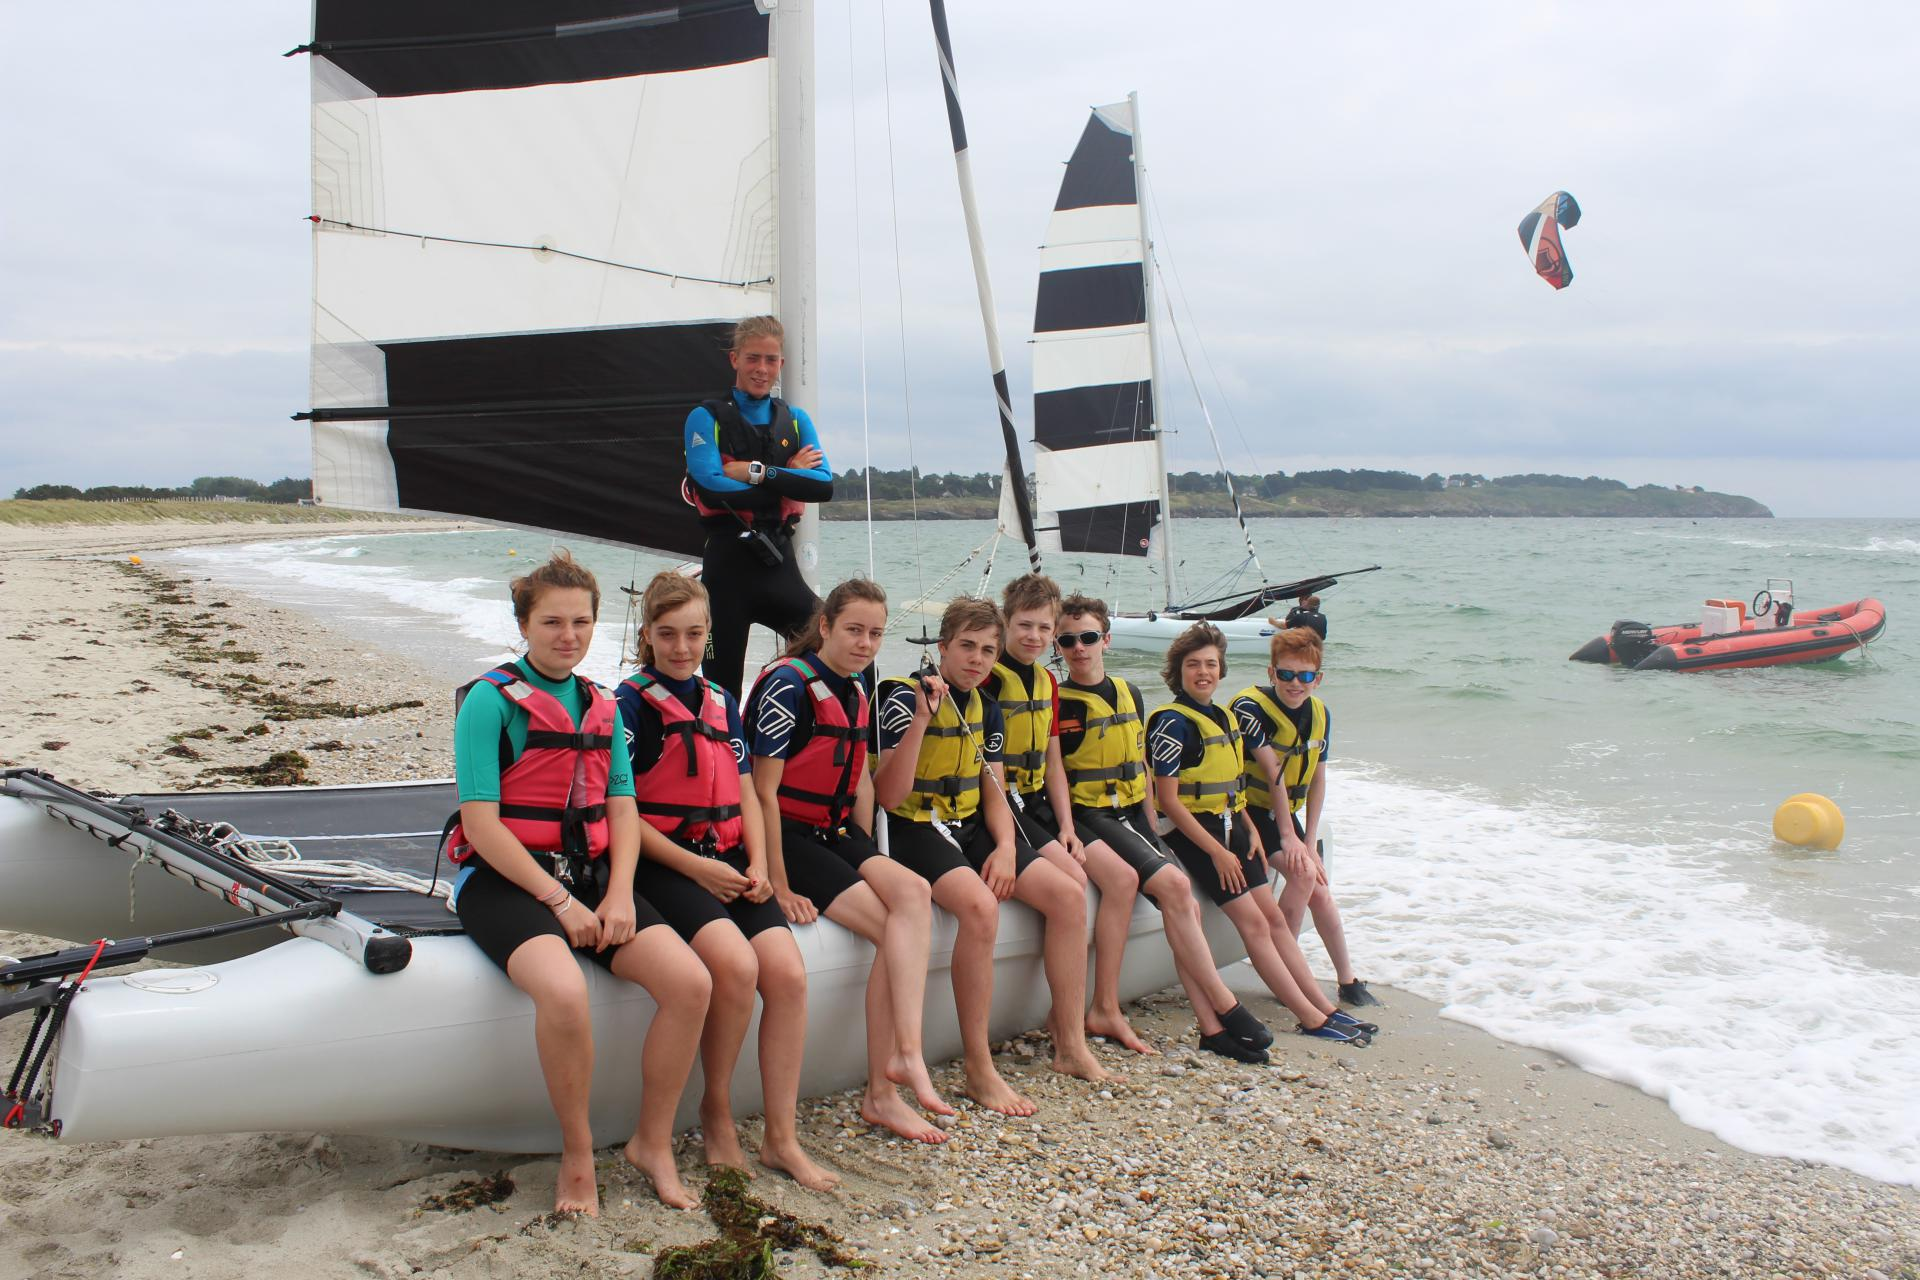 Club Nautique du Rohu - Listening to the instructor